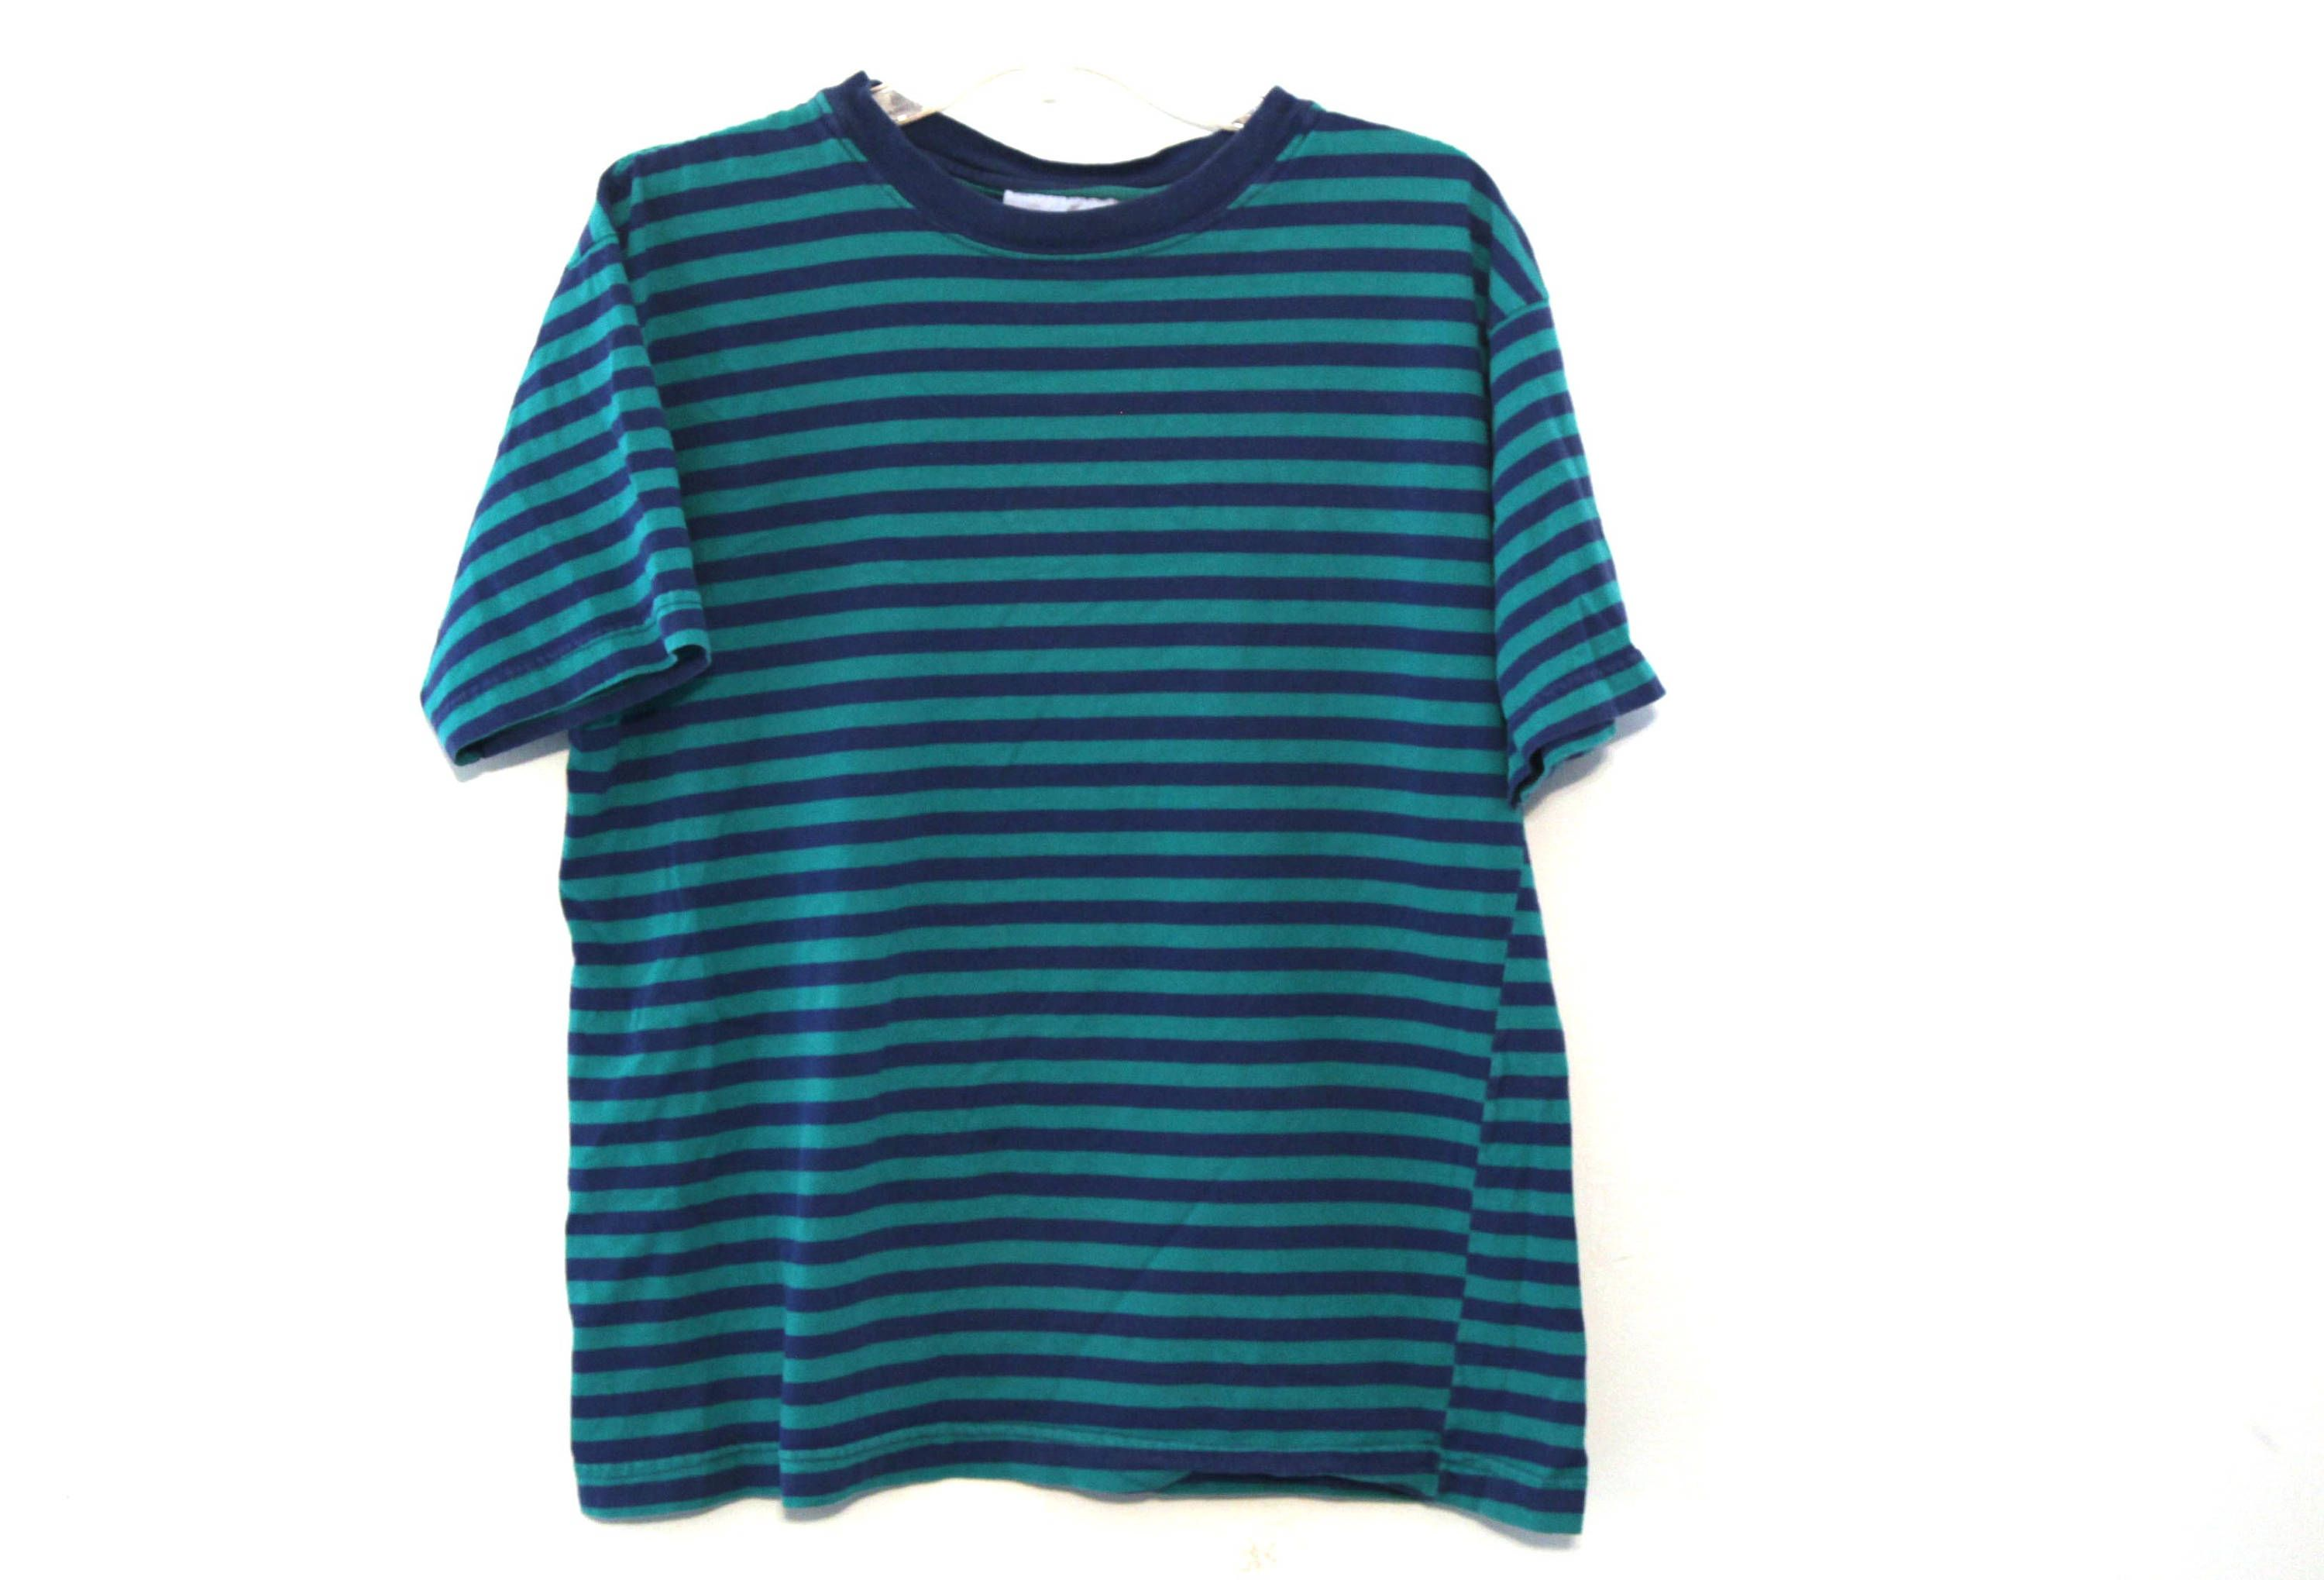 0dff3a38e9fce Vintage 80s striped tshirt pocket tee red navy blue top 90s ...